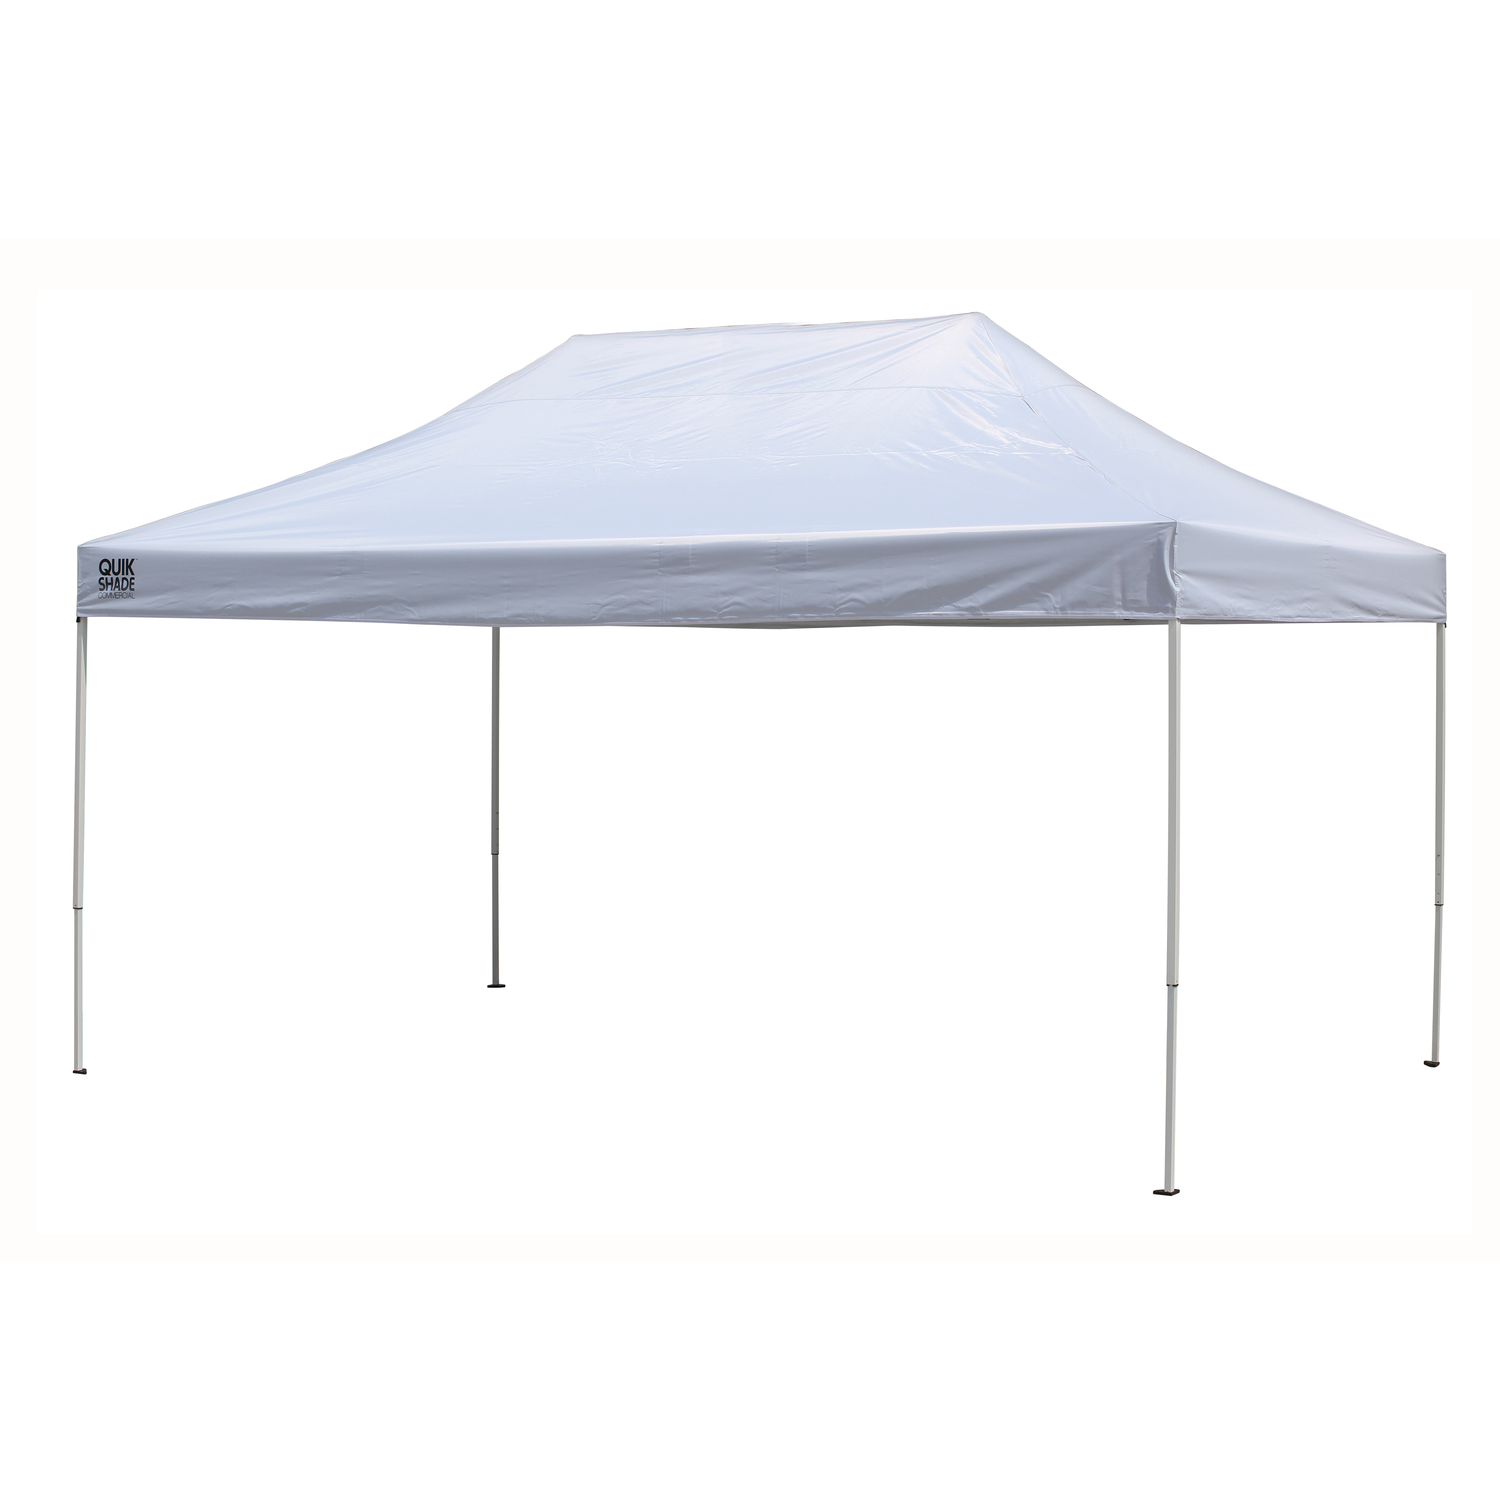 Quik Shade  Quik Shade  Polyester  Canopy  10 ft. L x 20 ft. W